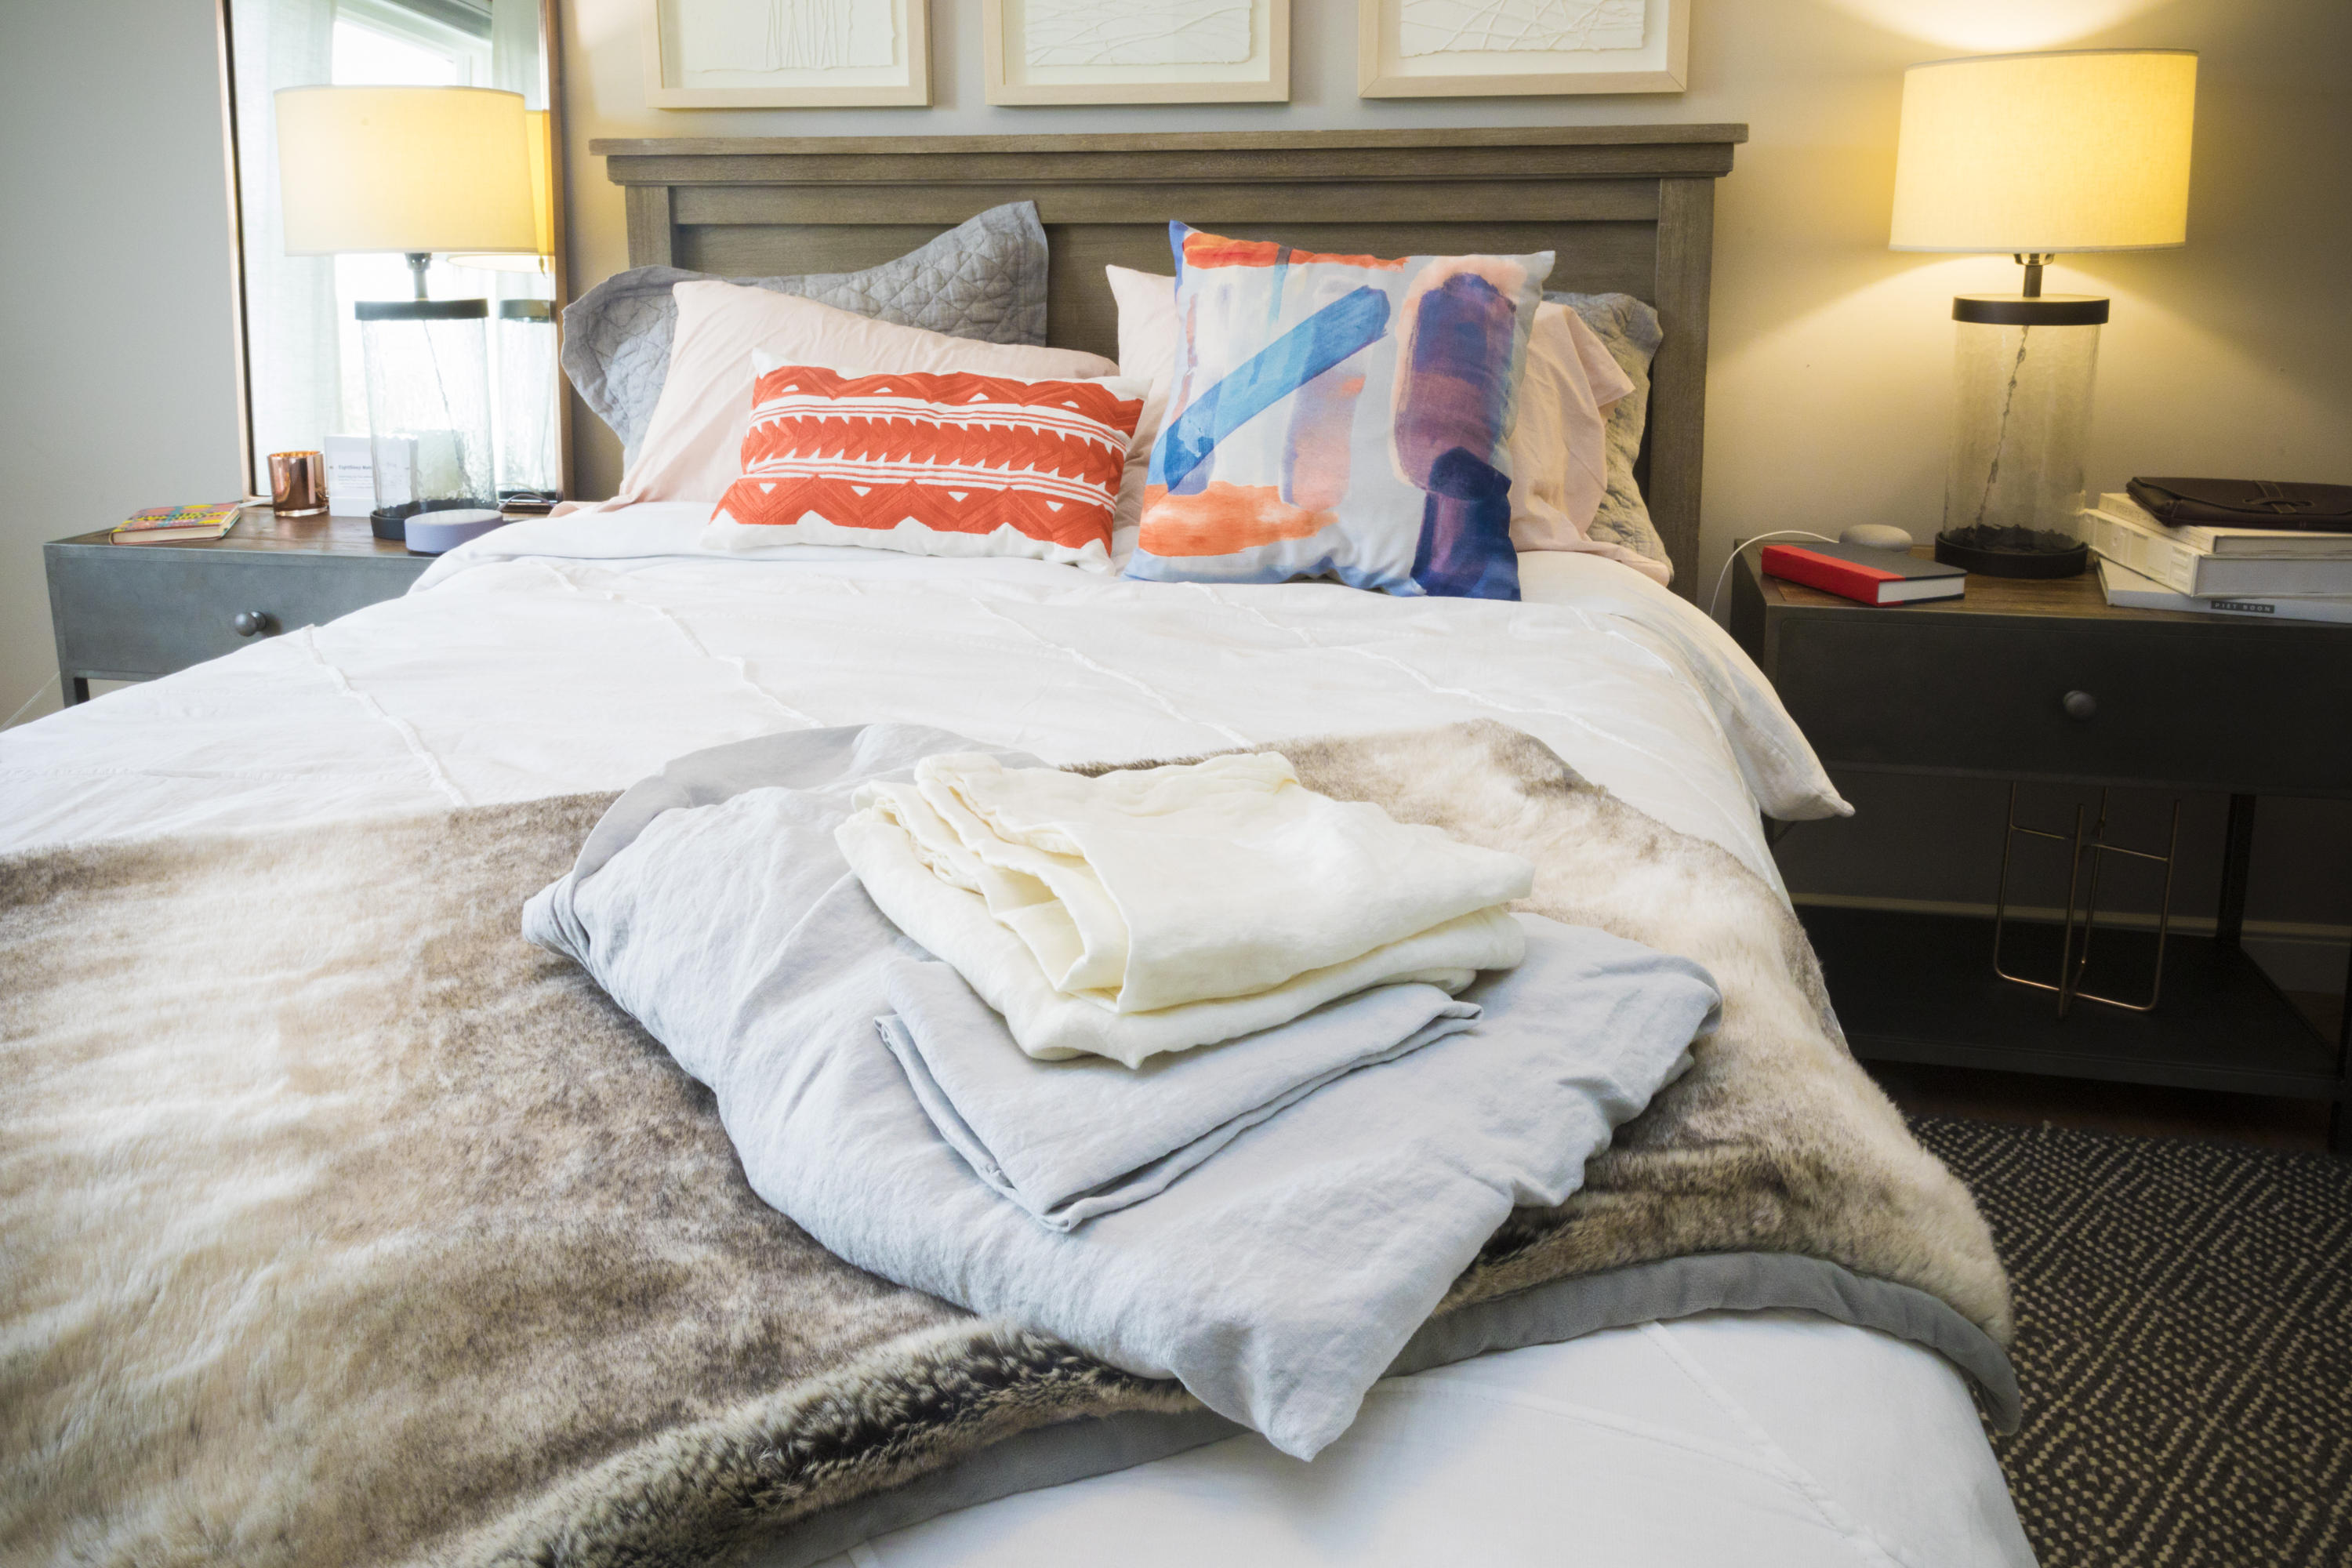 bed-sheets-smart-home-5782